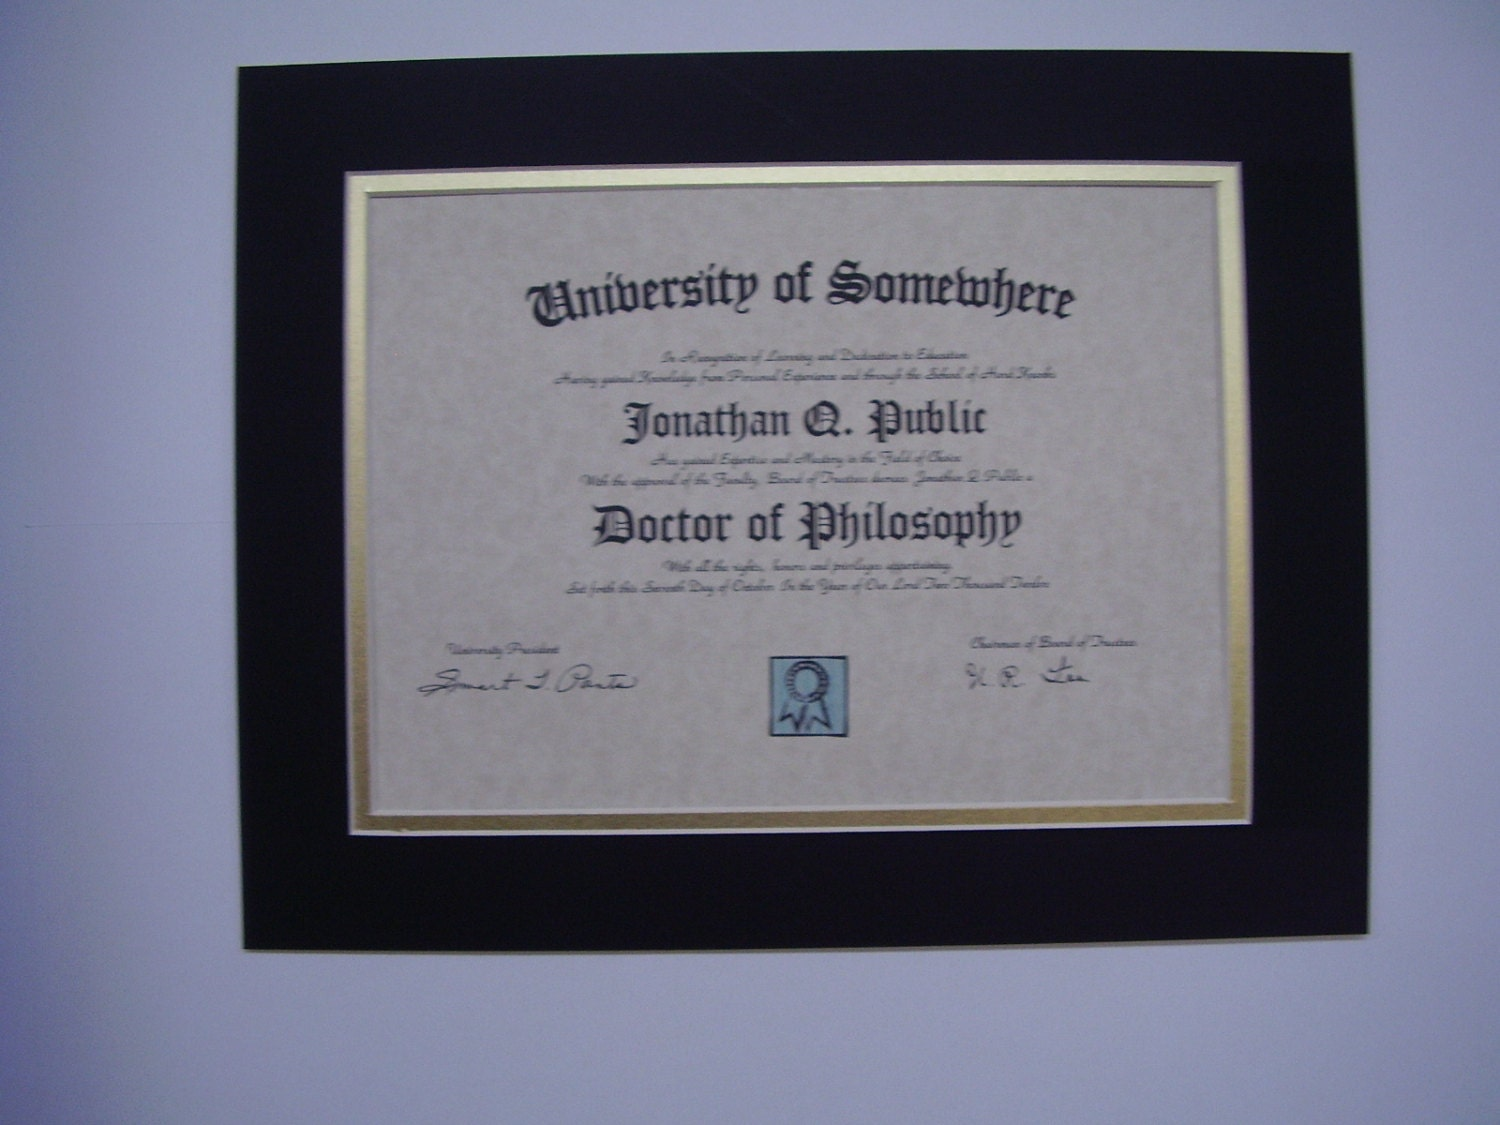 Picture Mat Diploma Size Mat Black With Shiny Gold 11x14